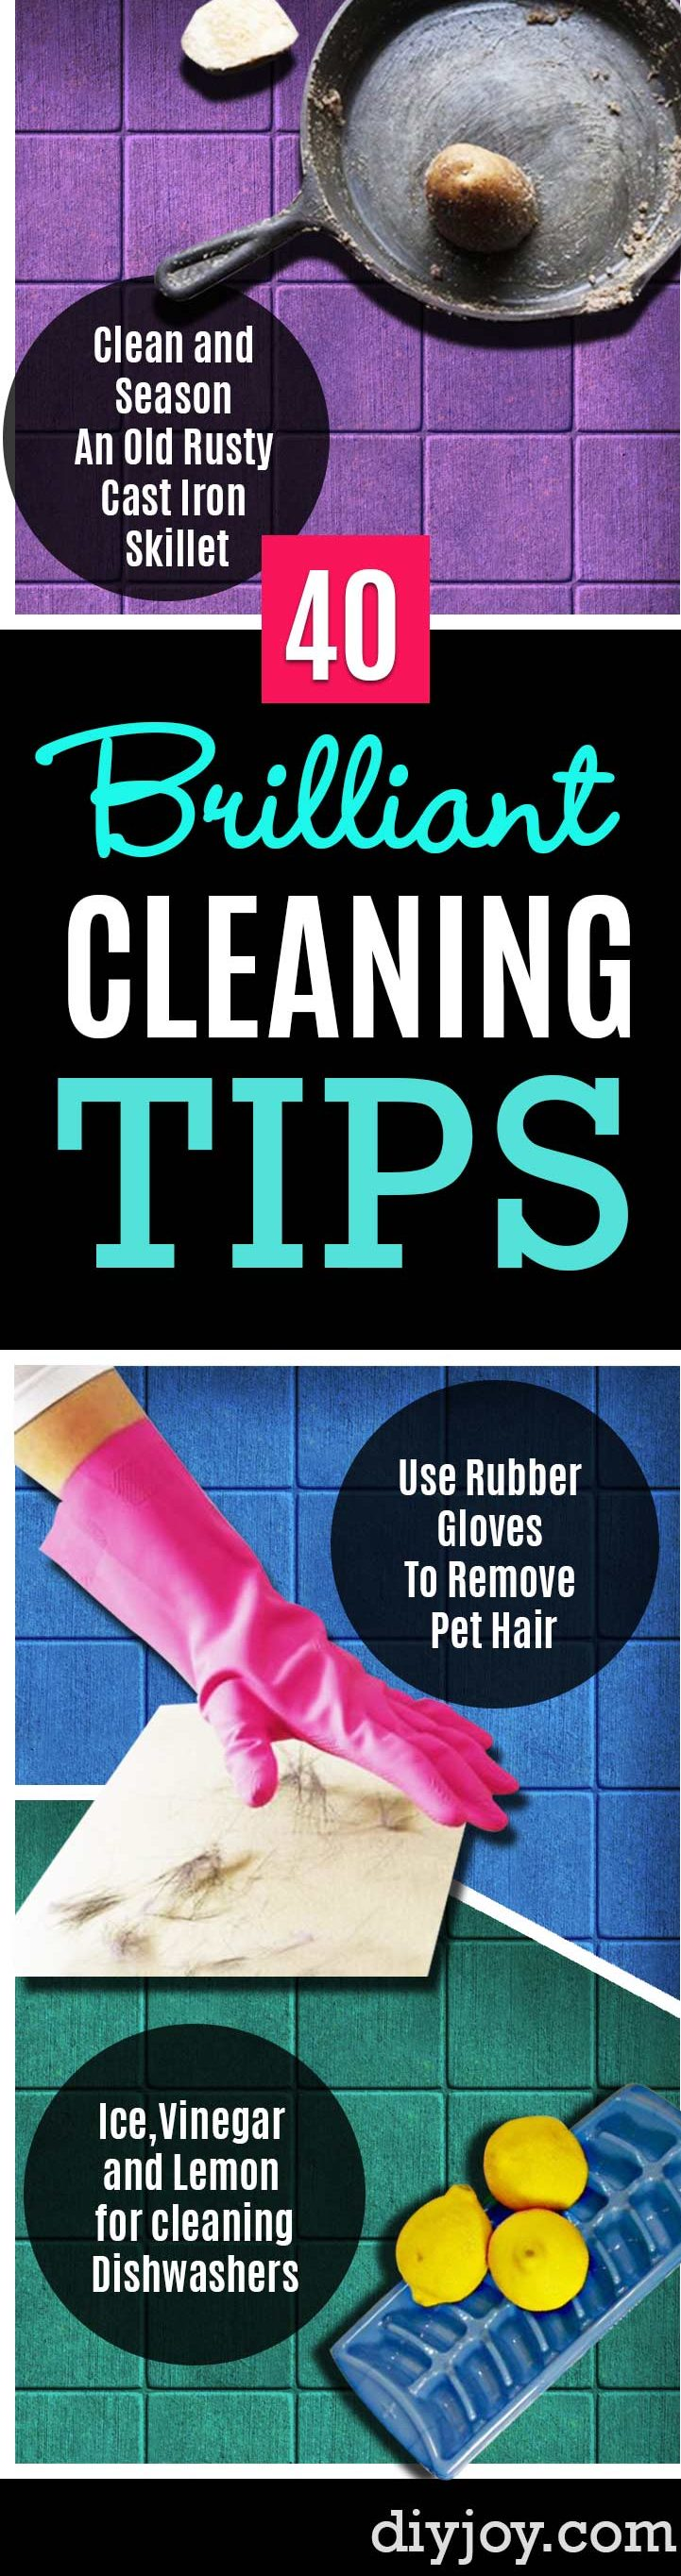 Cleaning Tips and Hacks To Keep Your Home Sparkling- Clever Ways to Make DYI Cleaning Easy. Bedroom, Bathroom, Kitchen, Garage, Floors, Countertops, Tub and Shower, Til, Laundry and Clothes